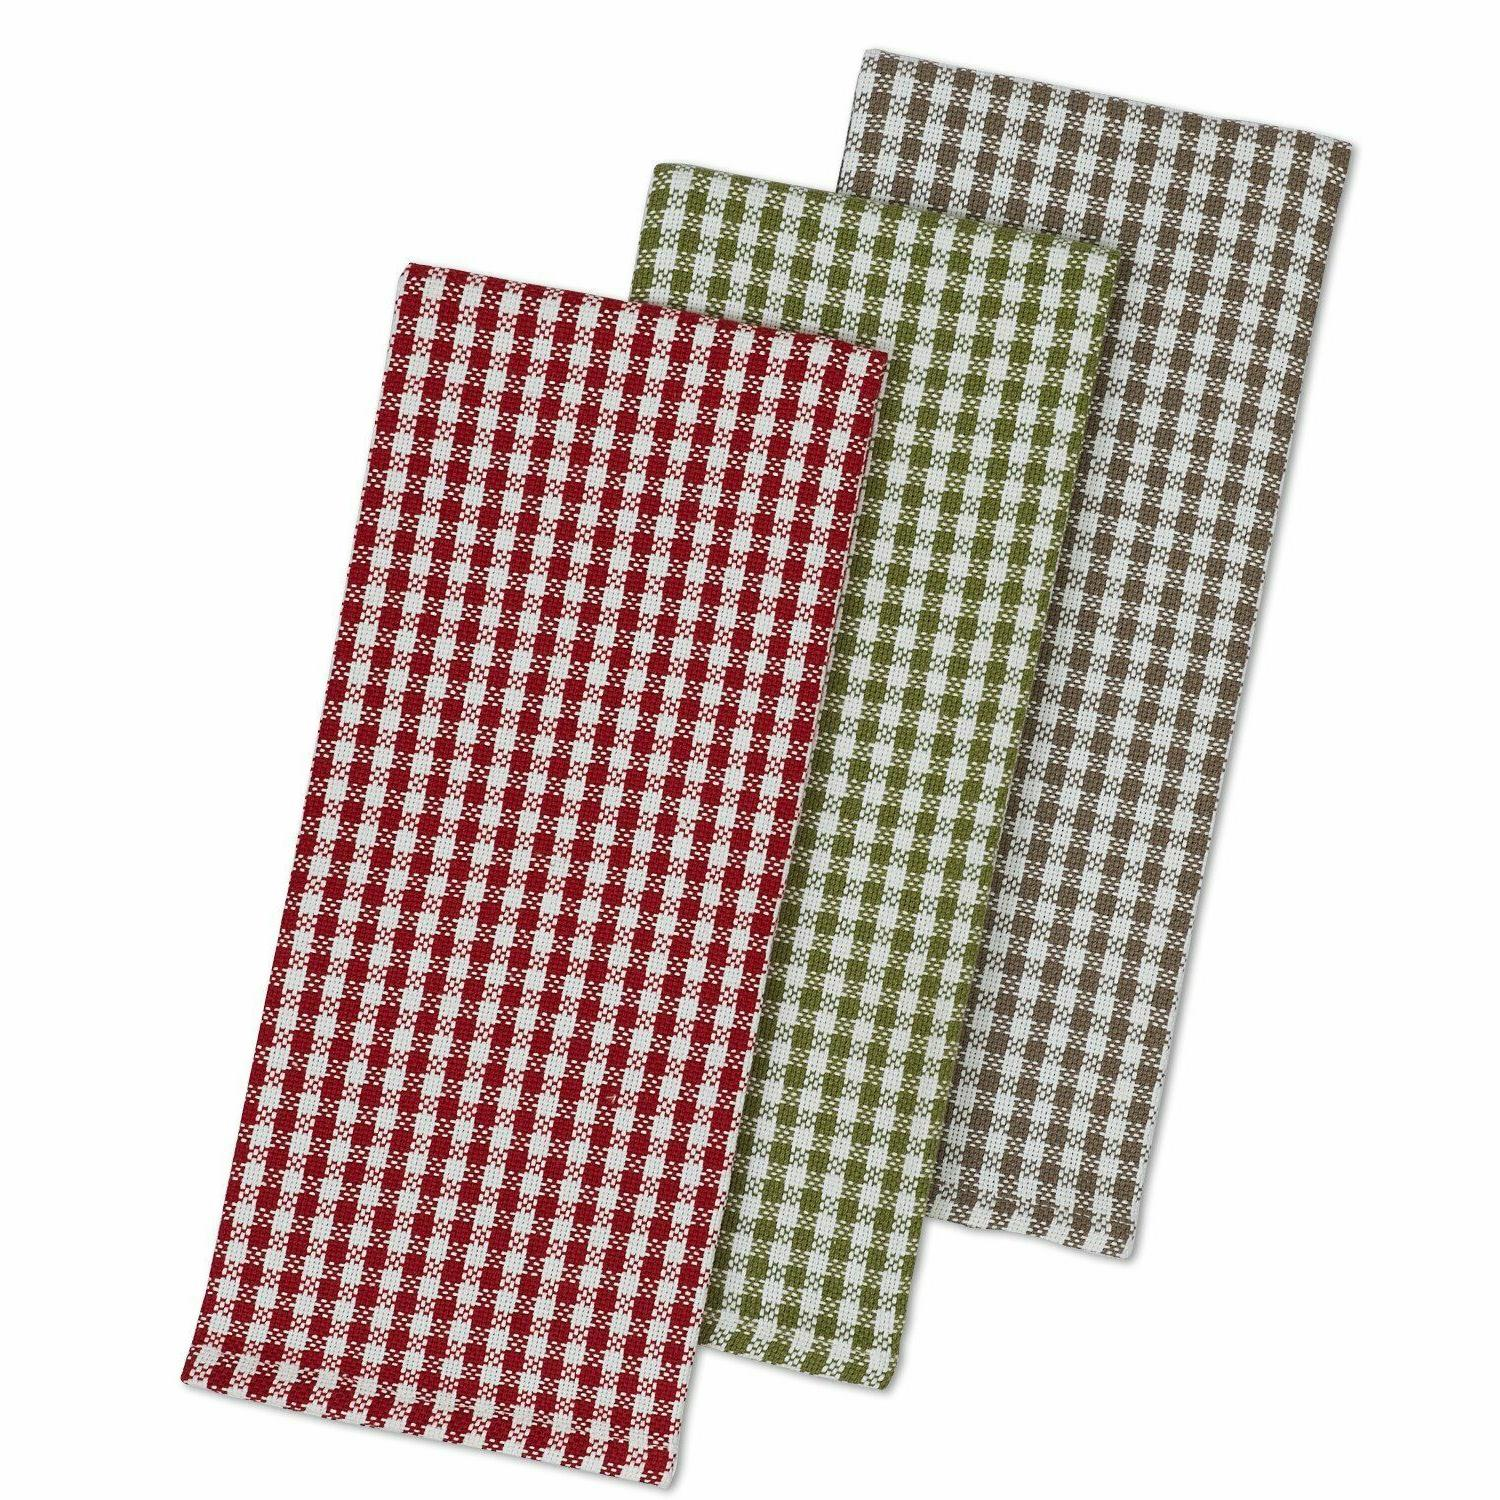 orchard heavy weight dishtowels set of 3